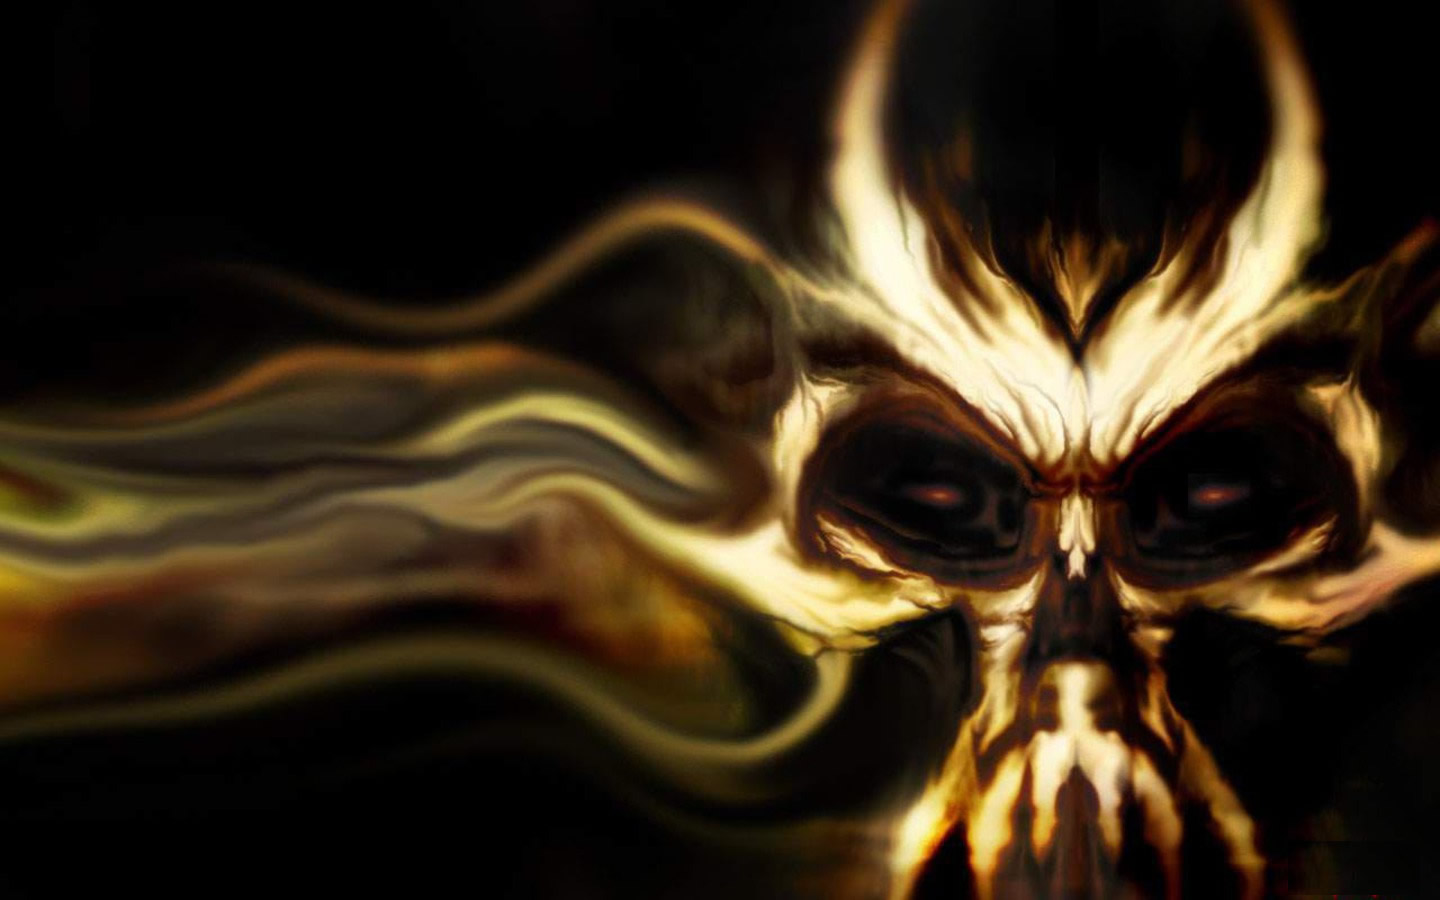 evil skull wallpapers screensaver - photo #11